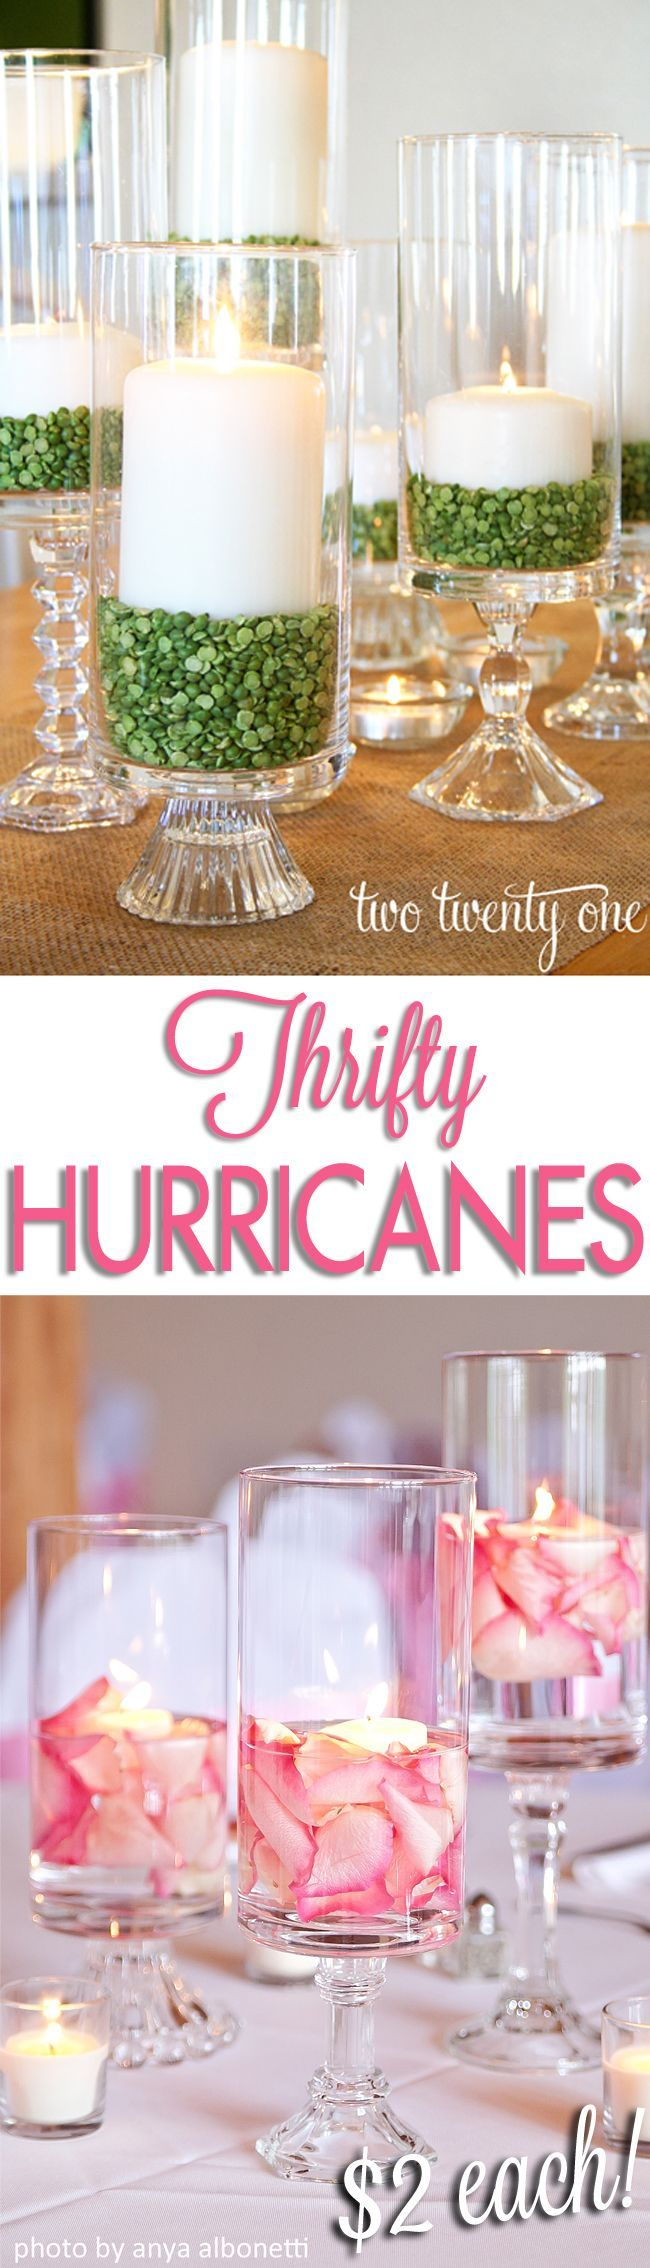 best 25 everyday table centerpieces ideas only on pinterest